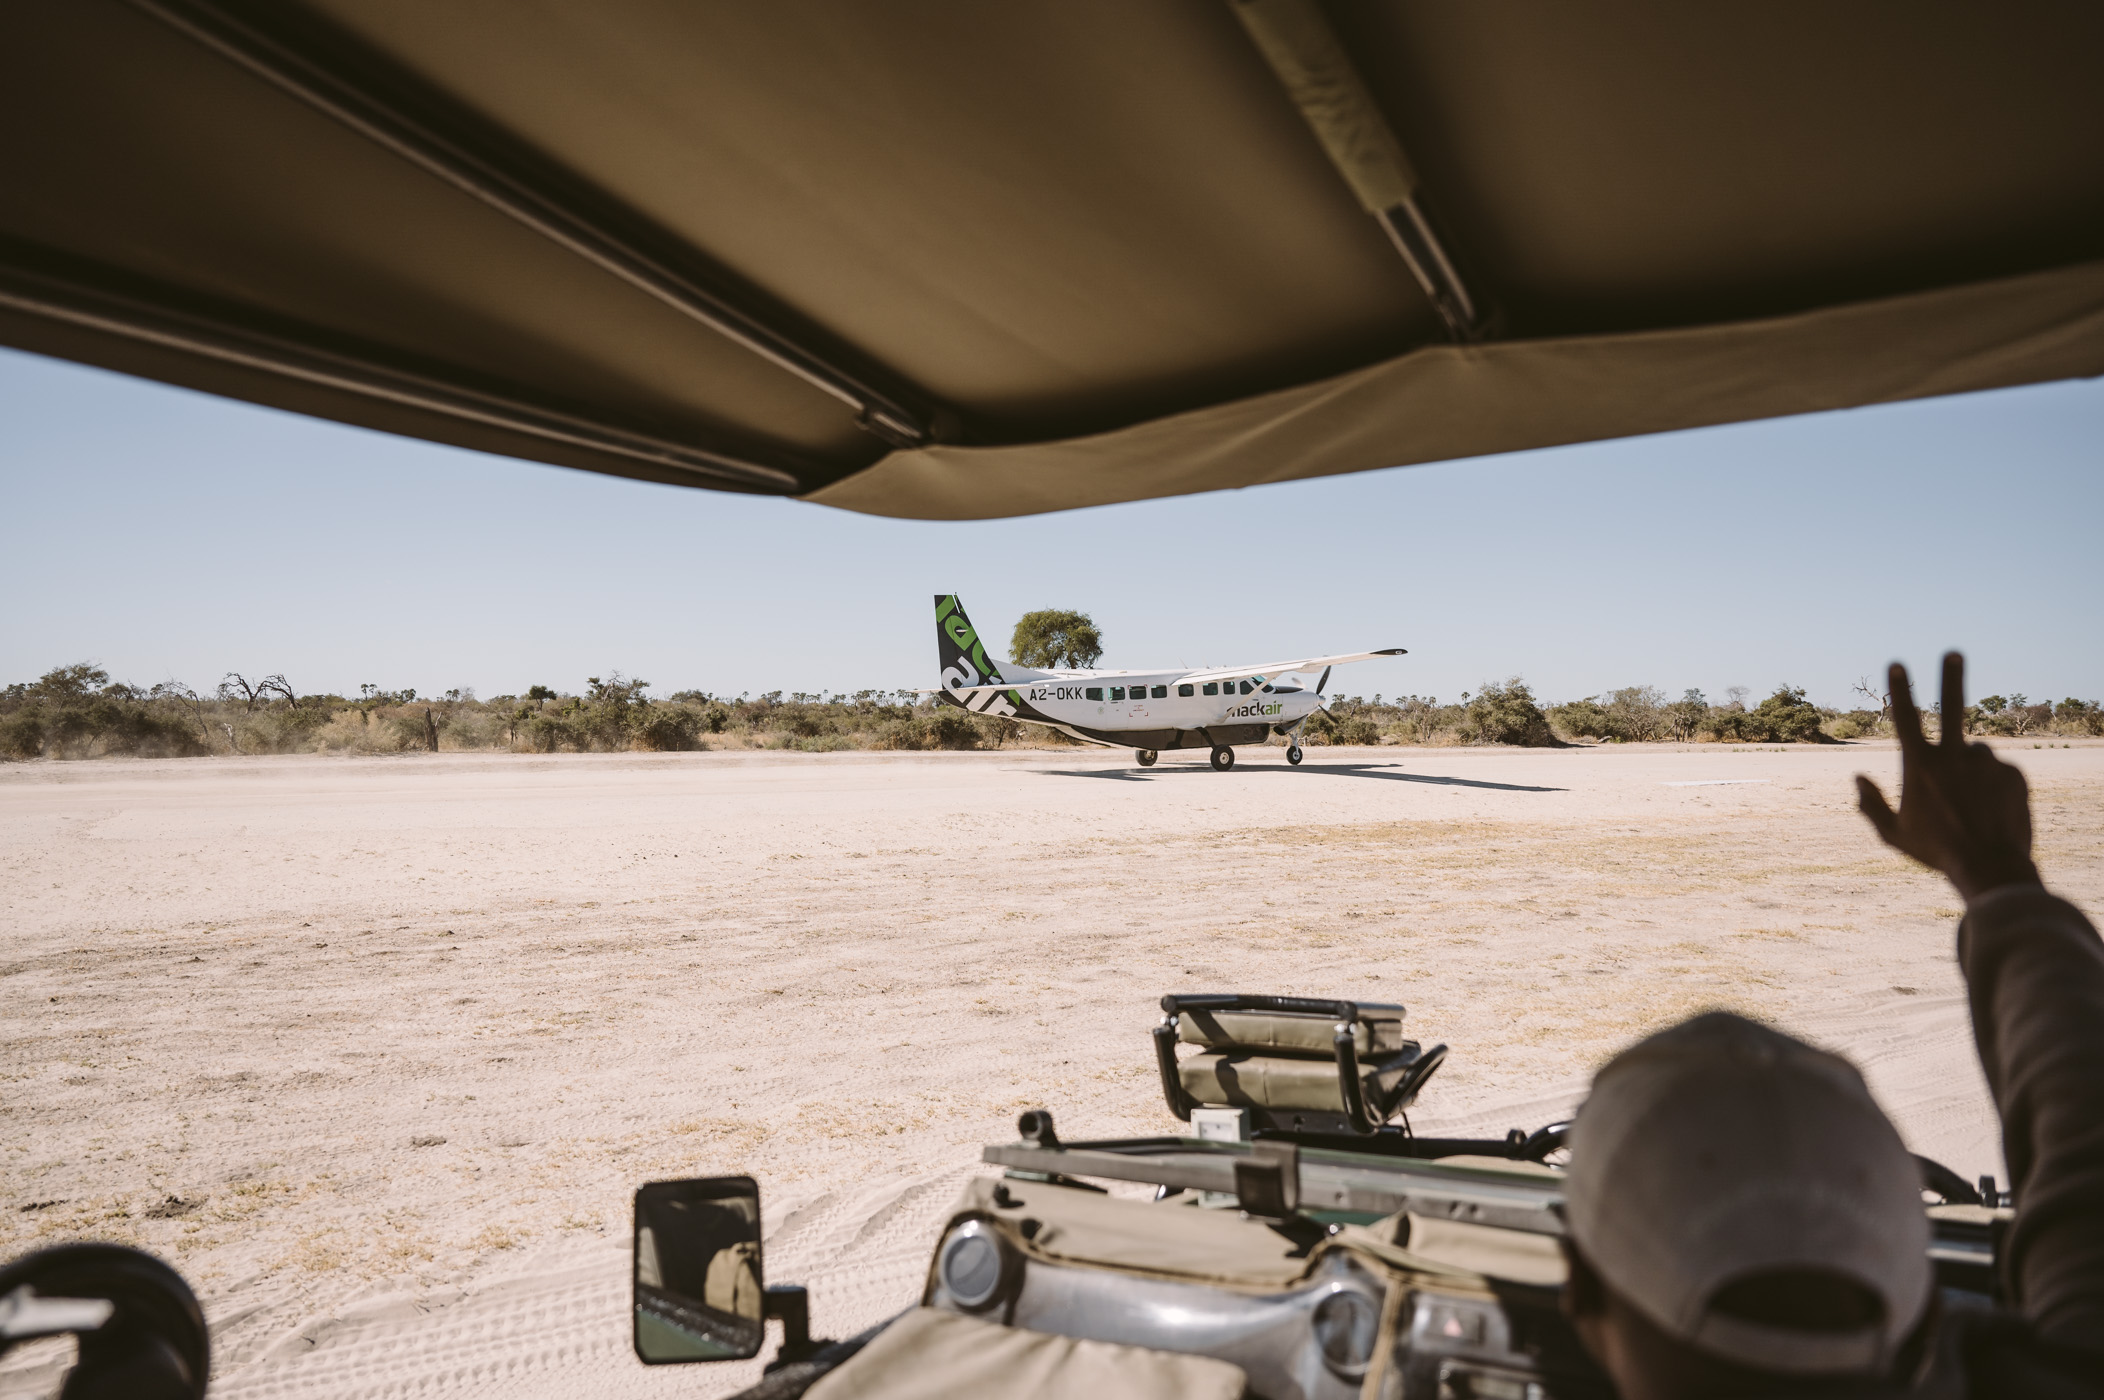 Getting picked up at the Sandibe airstrip in Botswana